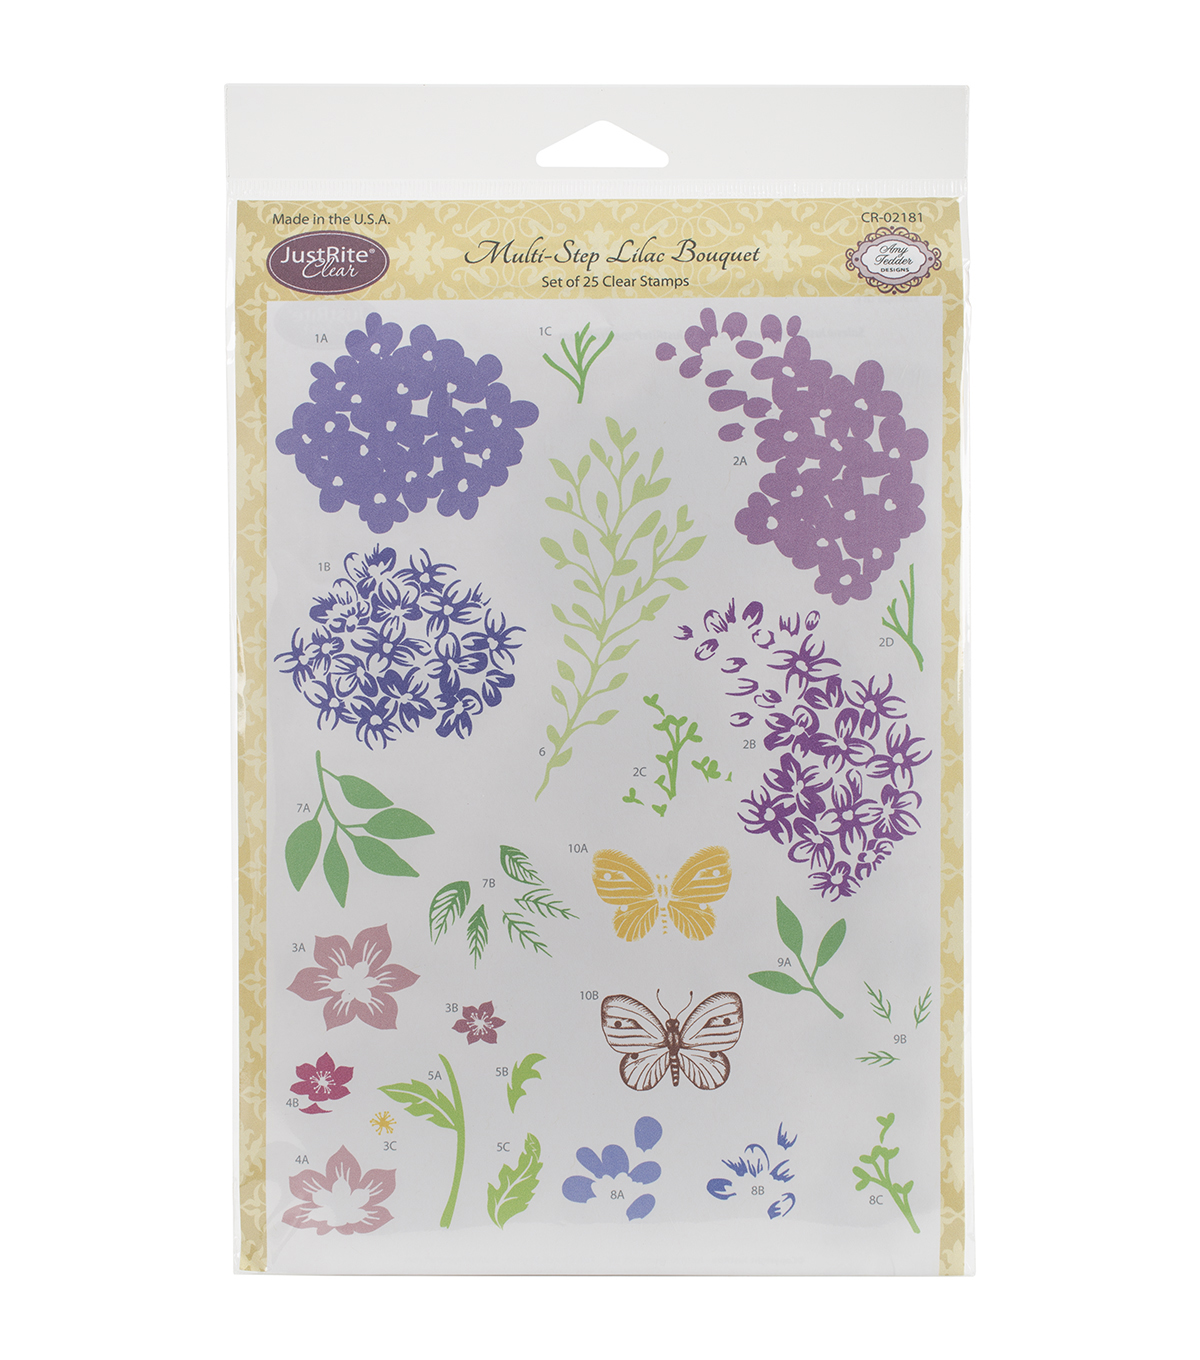 JustRite Papercraft 6''x8'' Clear Stamp Set-Multi-Step Lilac Bouquet